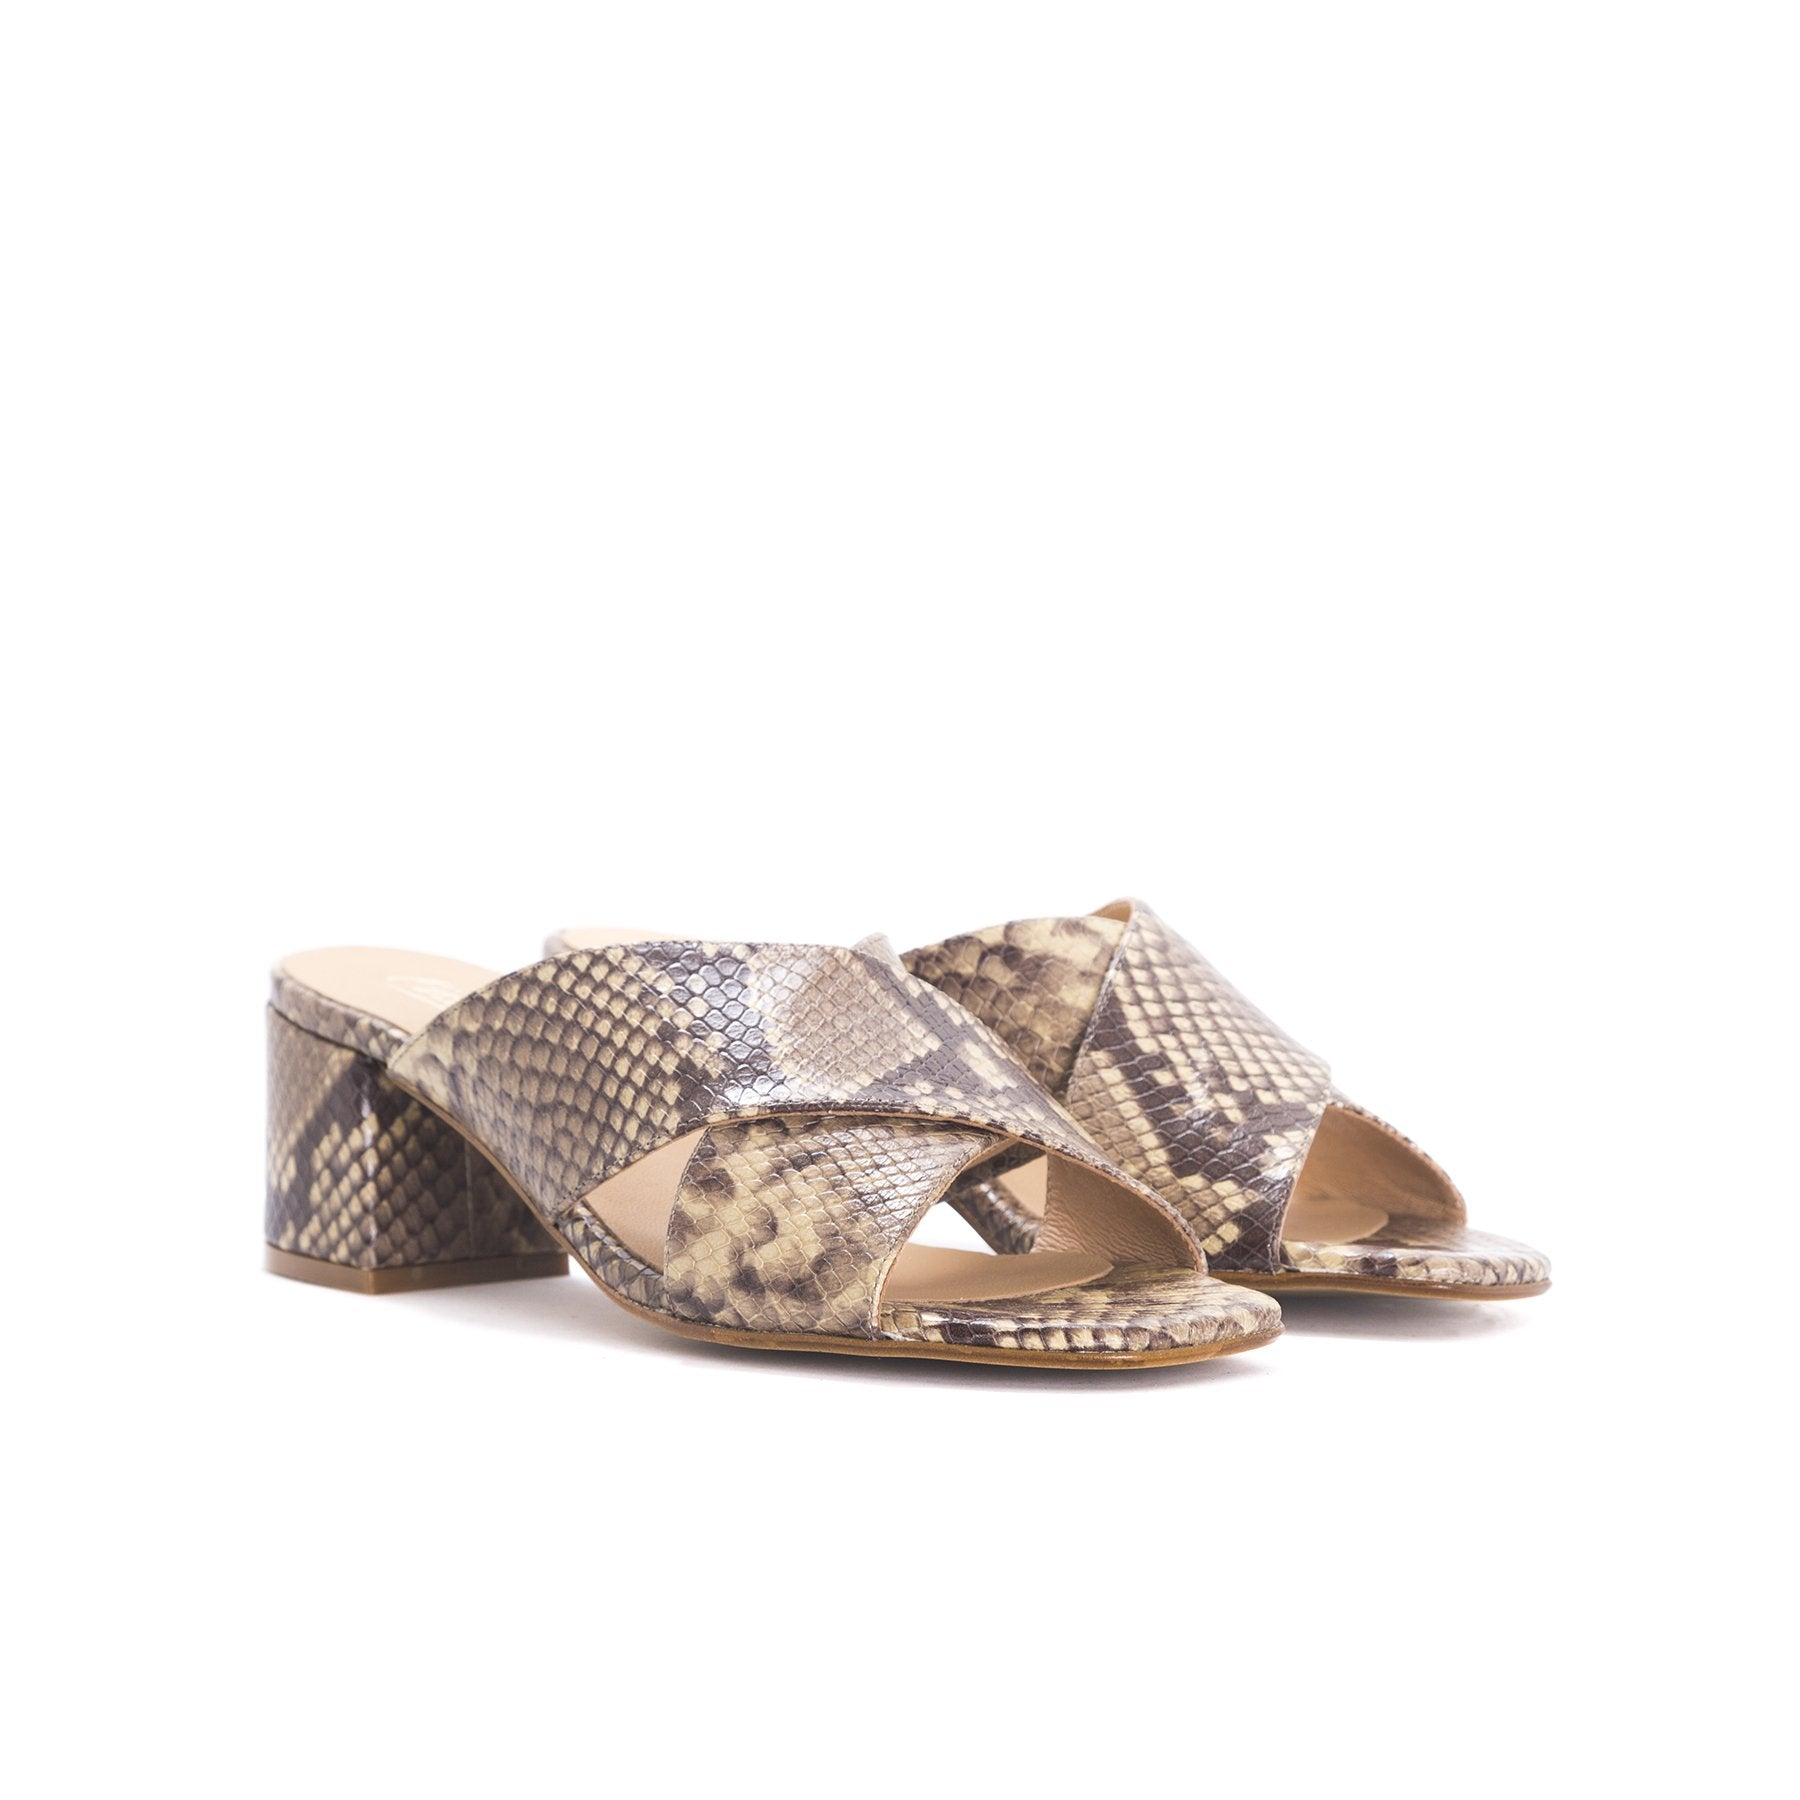 Iba Tan Snake Leather Sandals